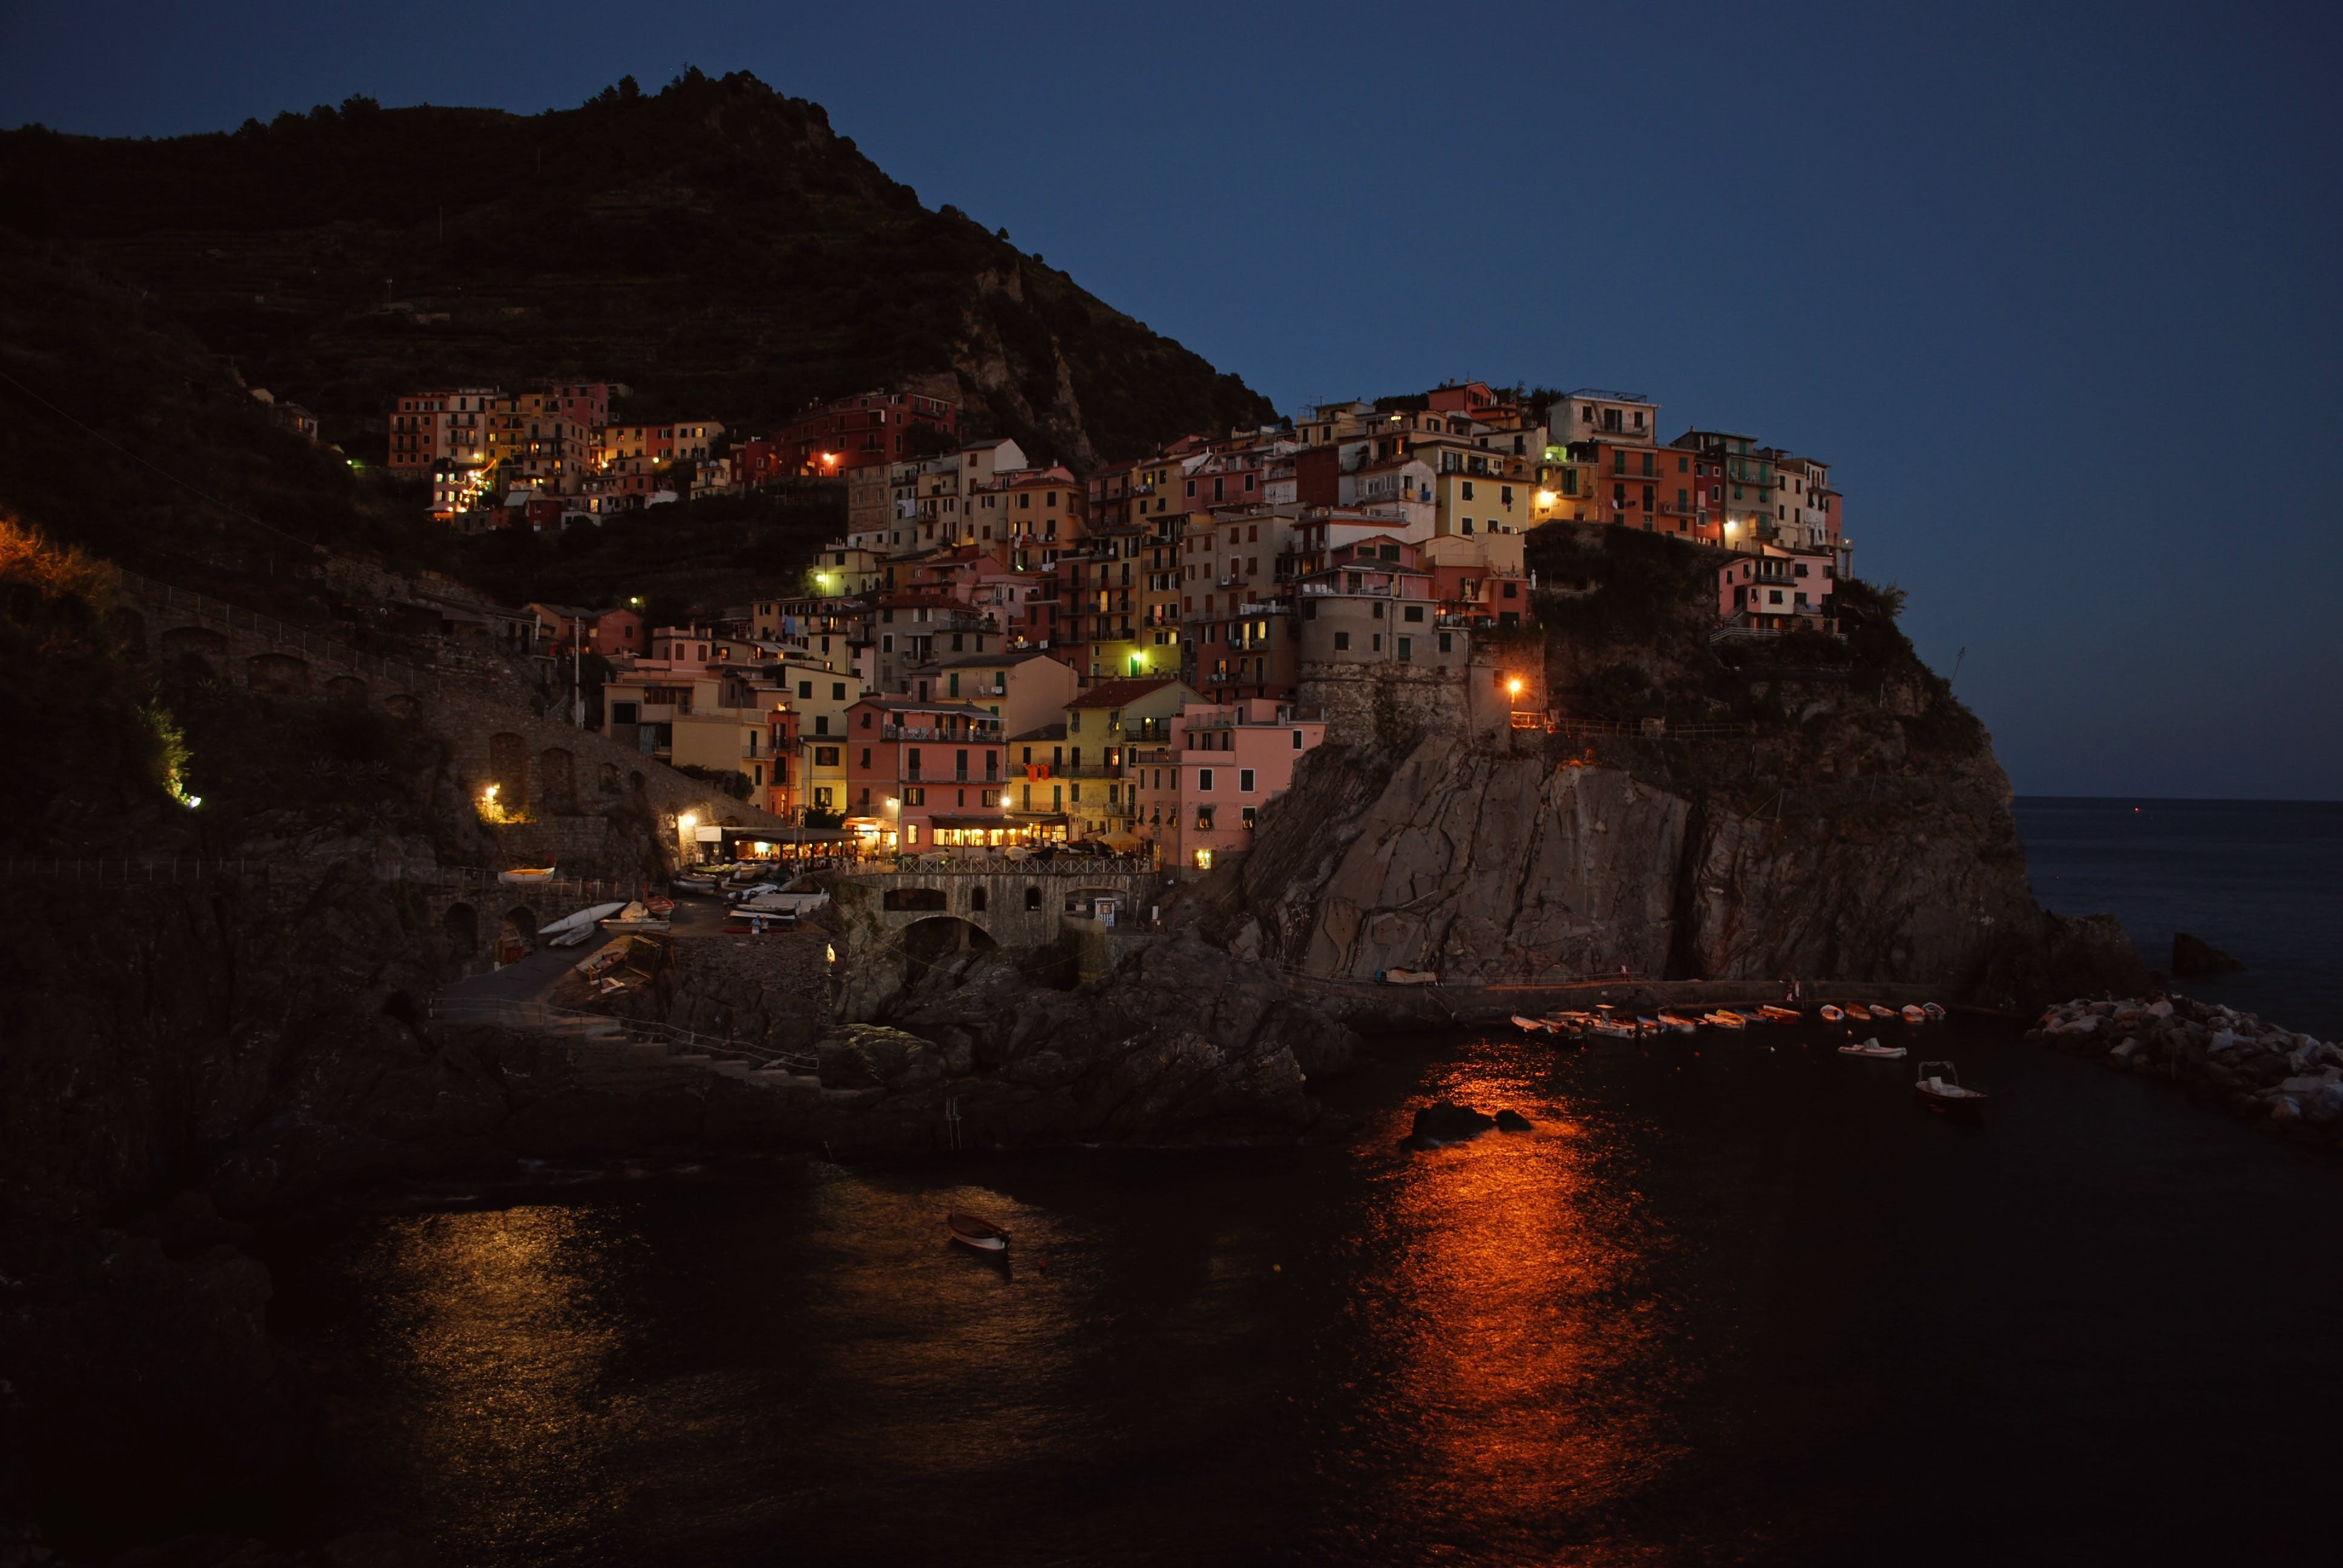 Free stock photo of buildings, cinque terre, cityscape, evening